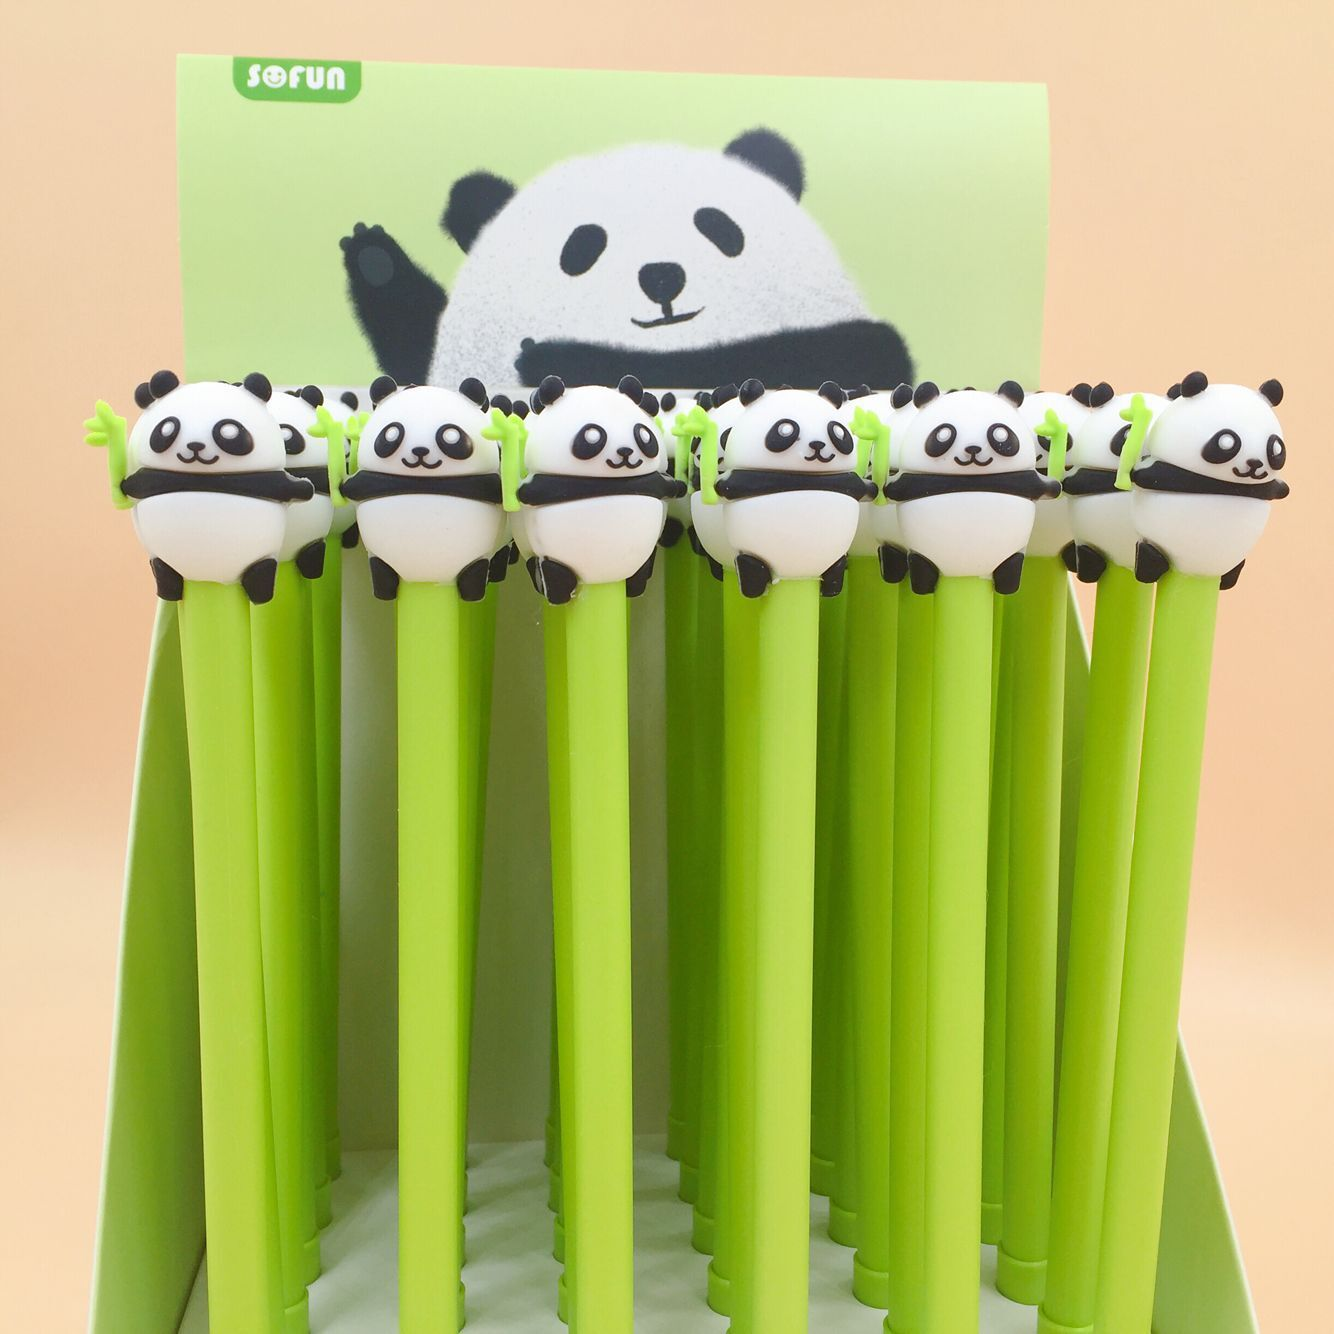 2 Pcs/lot Lovely Panda Gel Pen Signature Pen Escolar Papelaria School Office Supply Promotional Gift